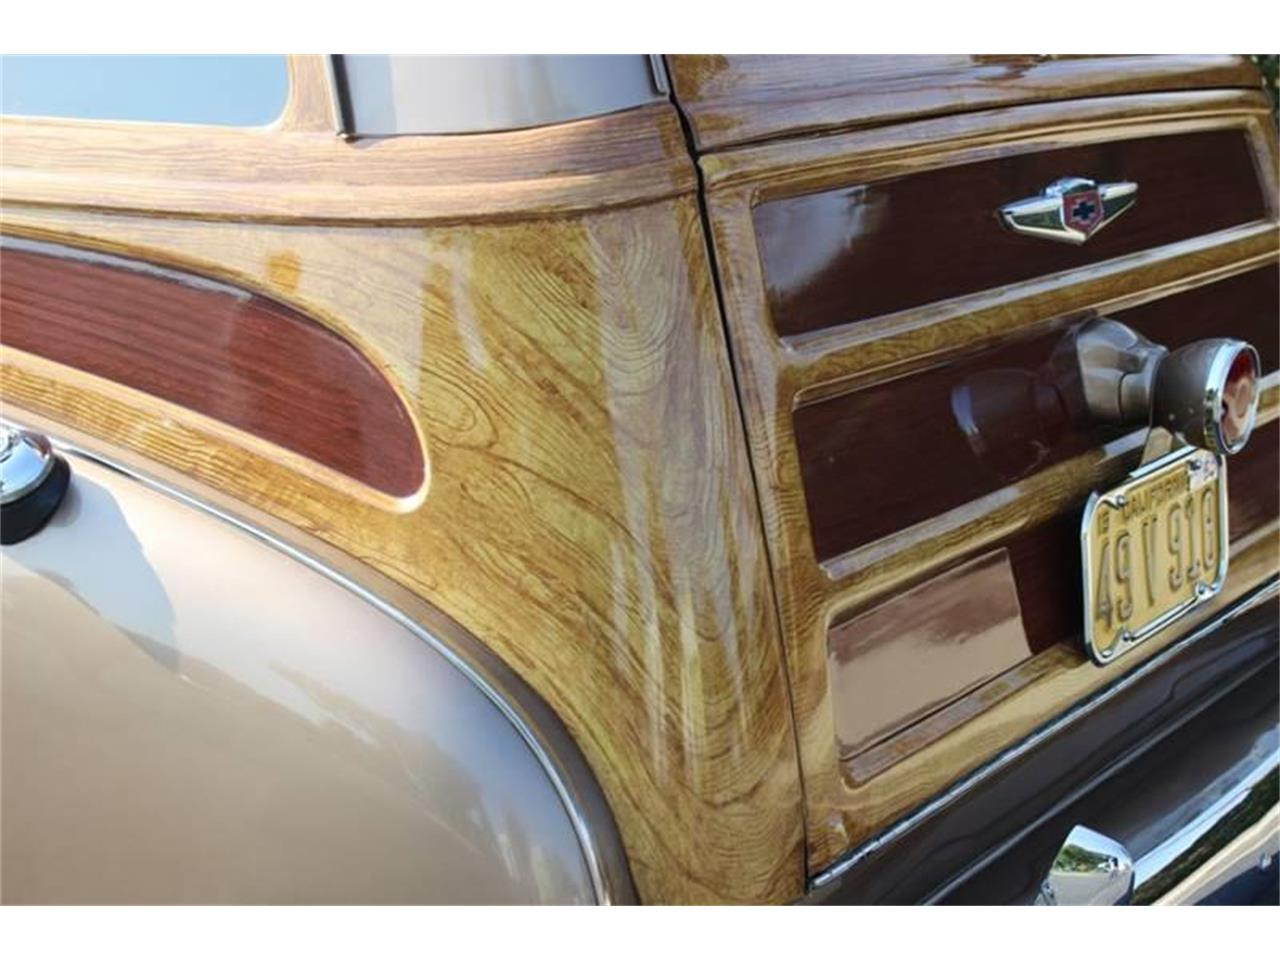 1950 Chevrolet Styleline Deluxe for sale in La Verne, CA – photo 22